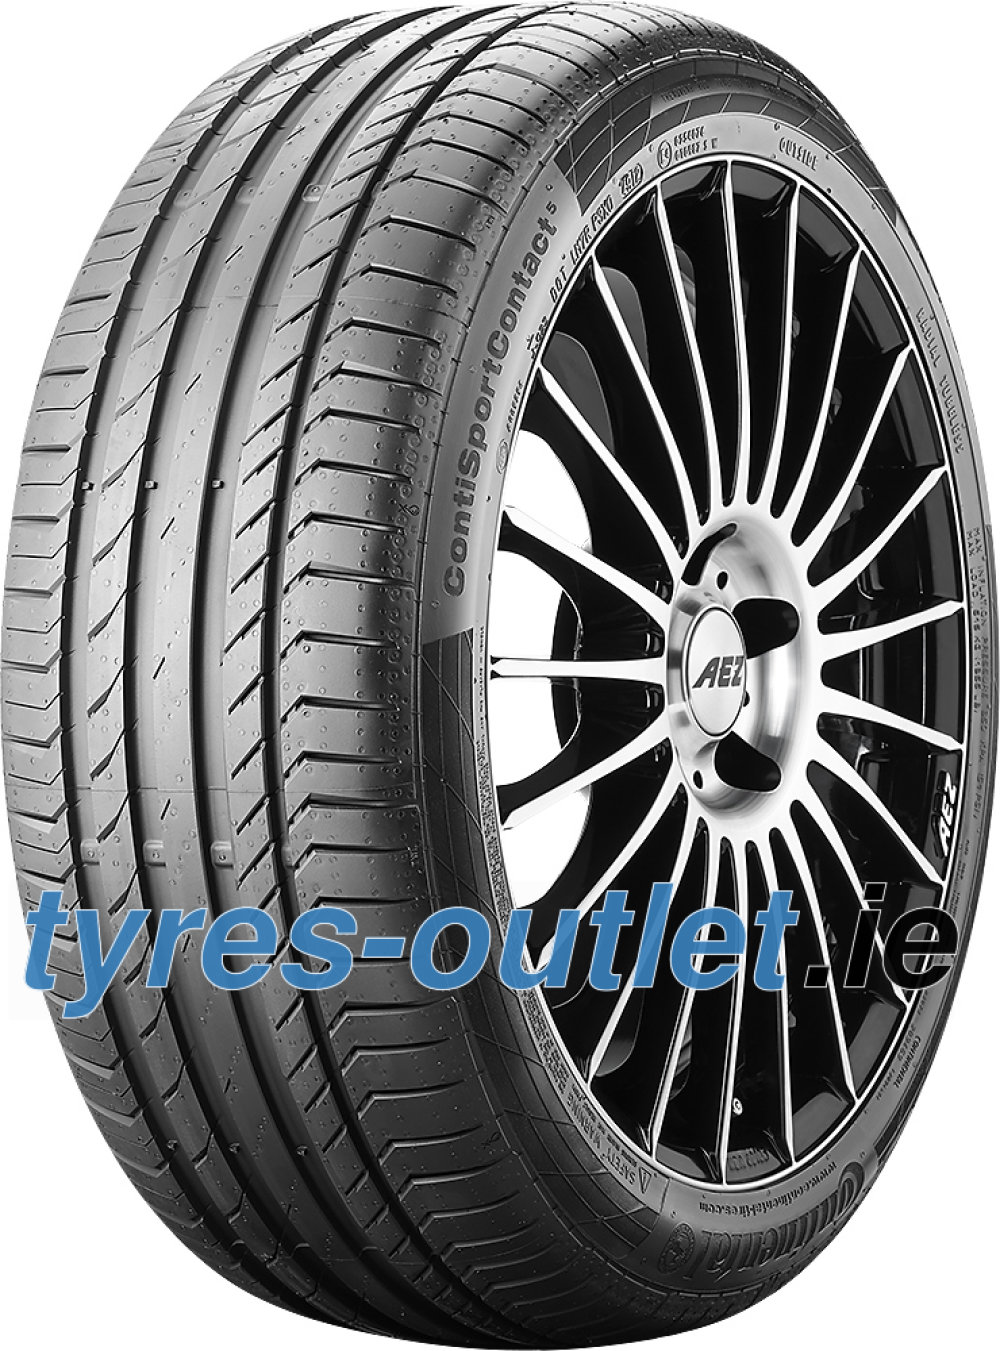 Continental ContiSportContact 5 SSR ( 225/45 R17 91W MOE, with kerbing rib, runflat )